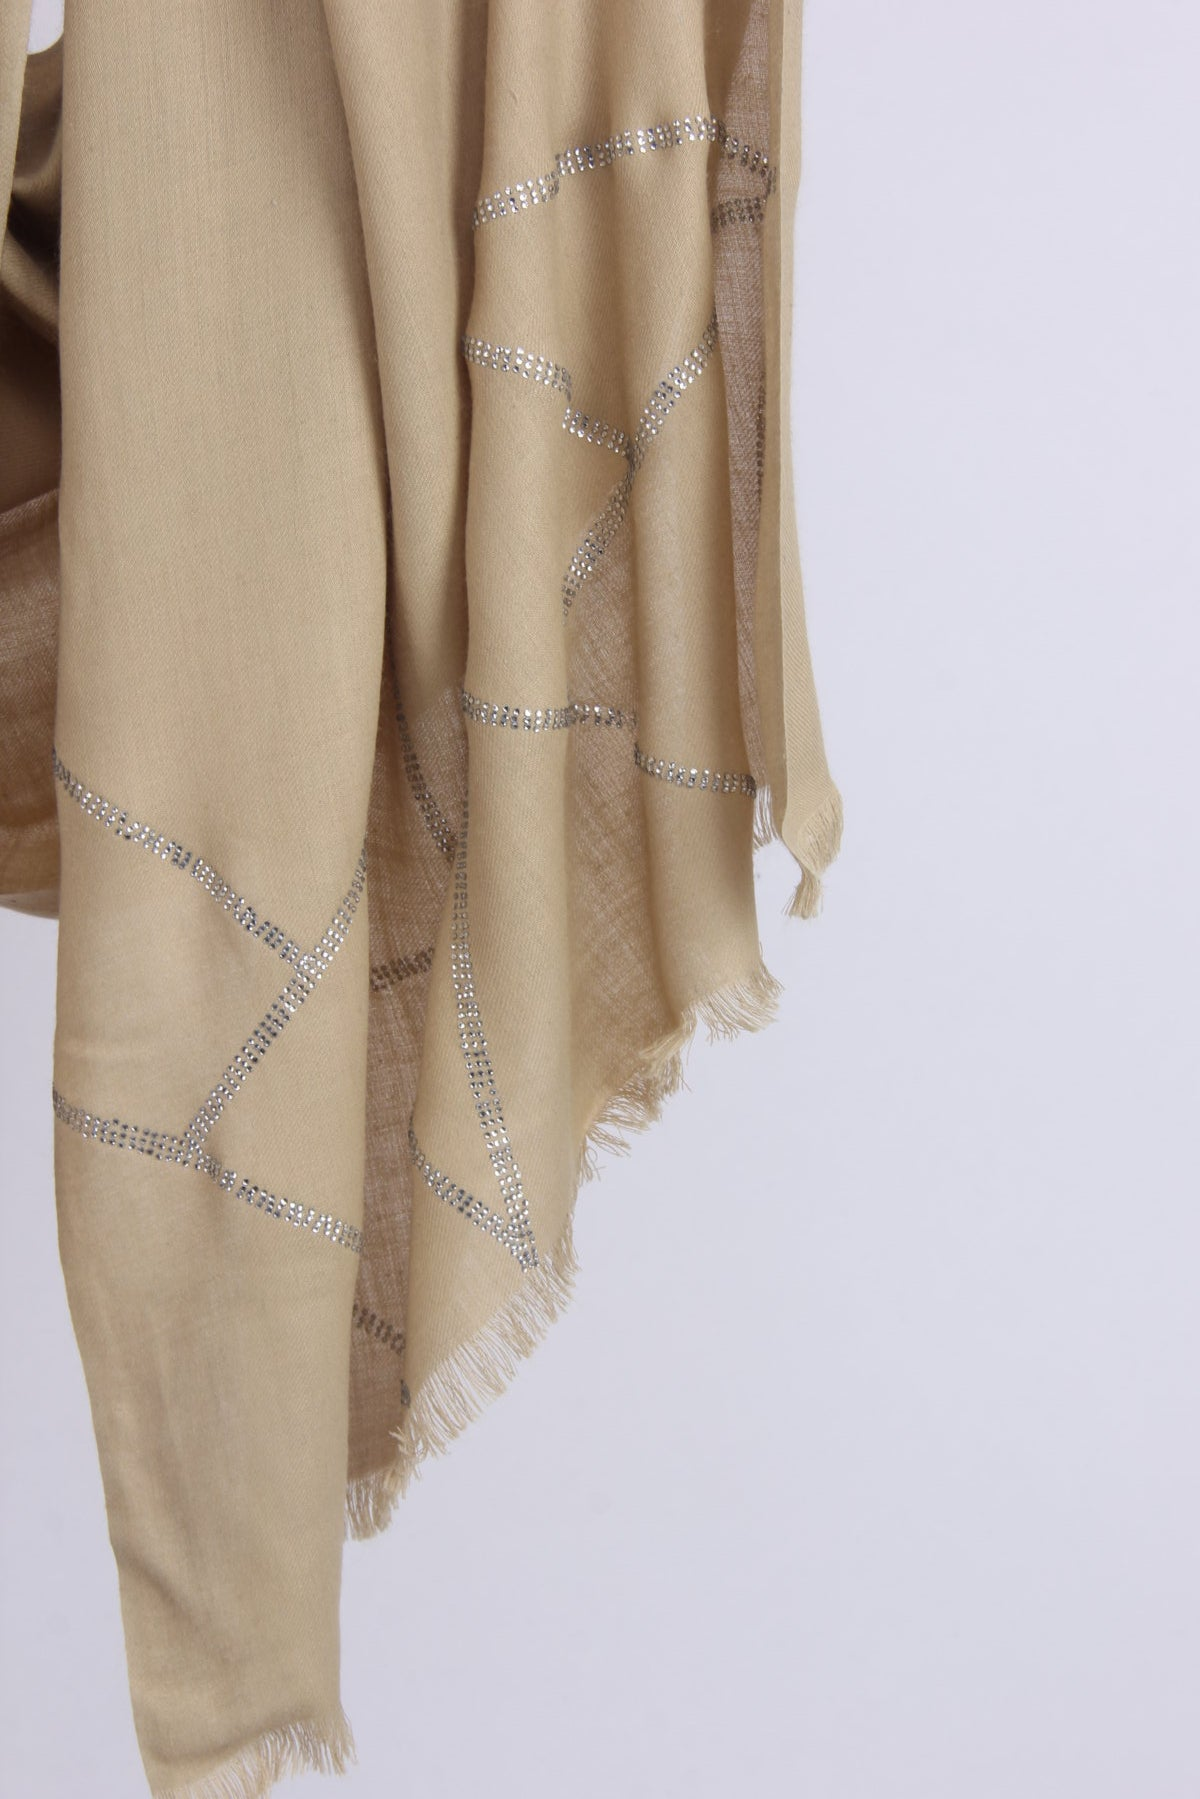 PASHMA SWAROVSKI CRISS-CROSS BAMBOO CASHMERE SCARF CRAFTED IN TWILL WEAVE